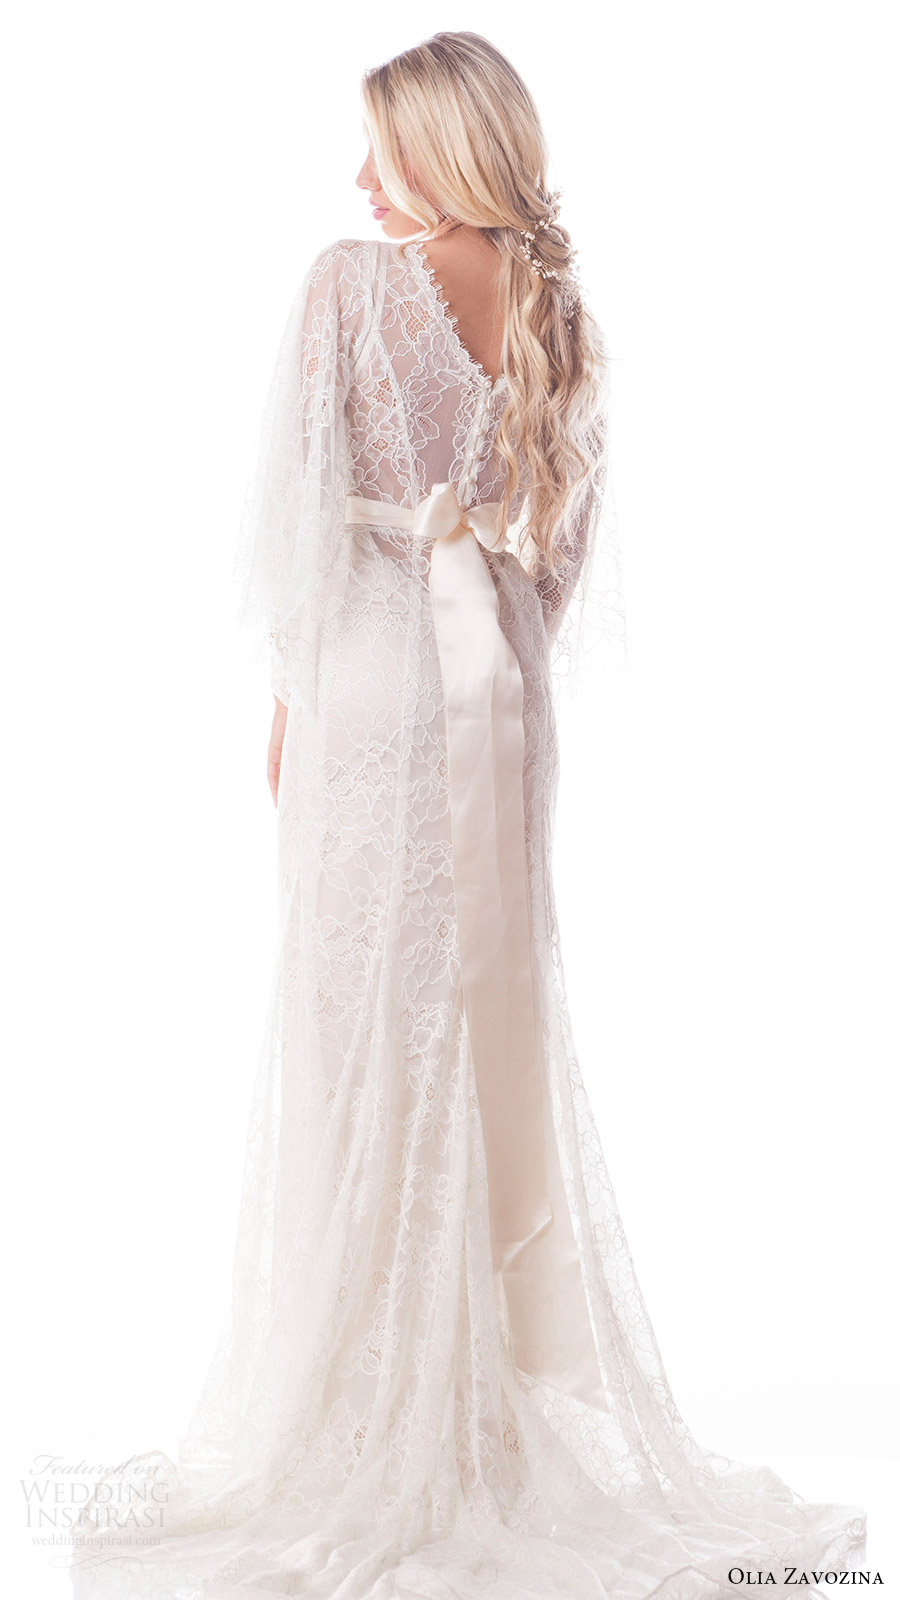 olia zavozina bridal spring 2017 butterfly sleeves vneck fit flare wedding dress lace overlay (valentina) bv pearl buttons